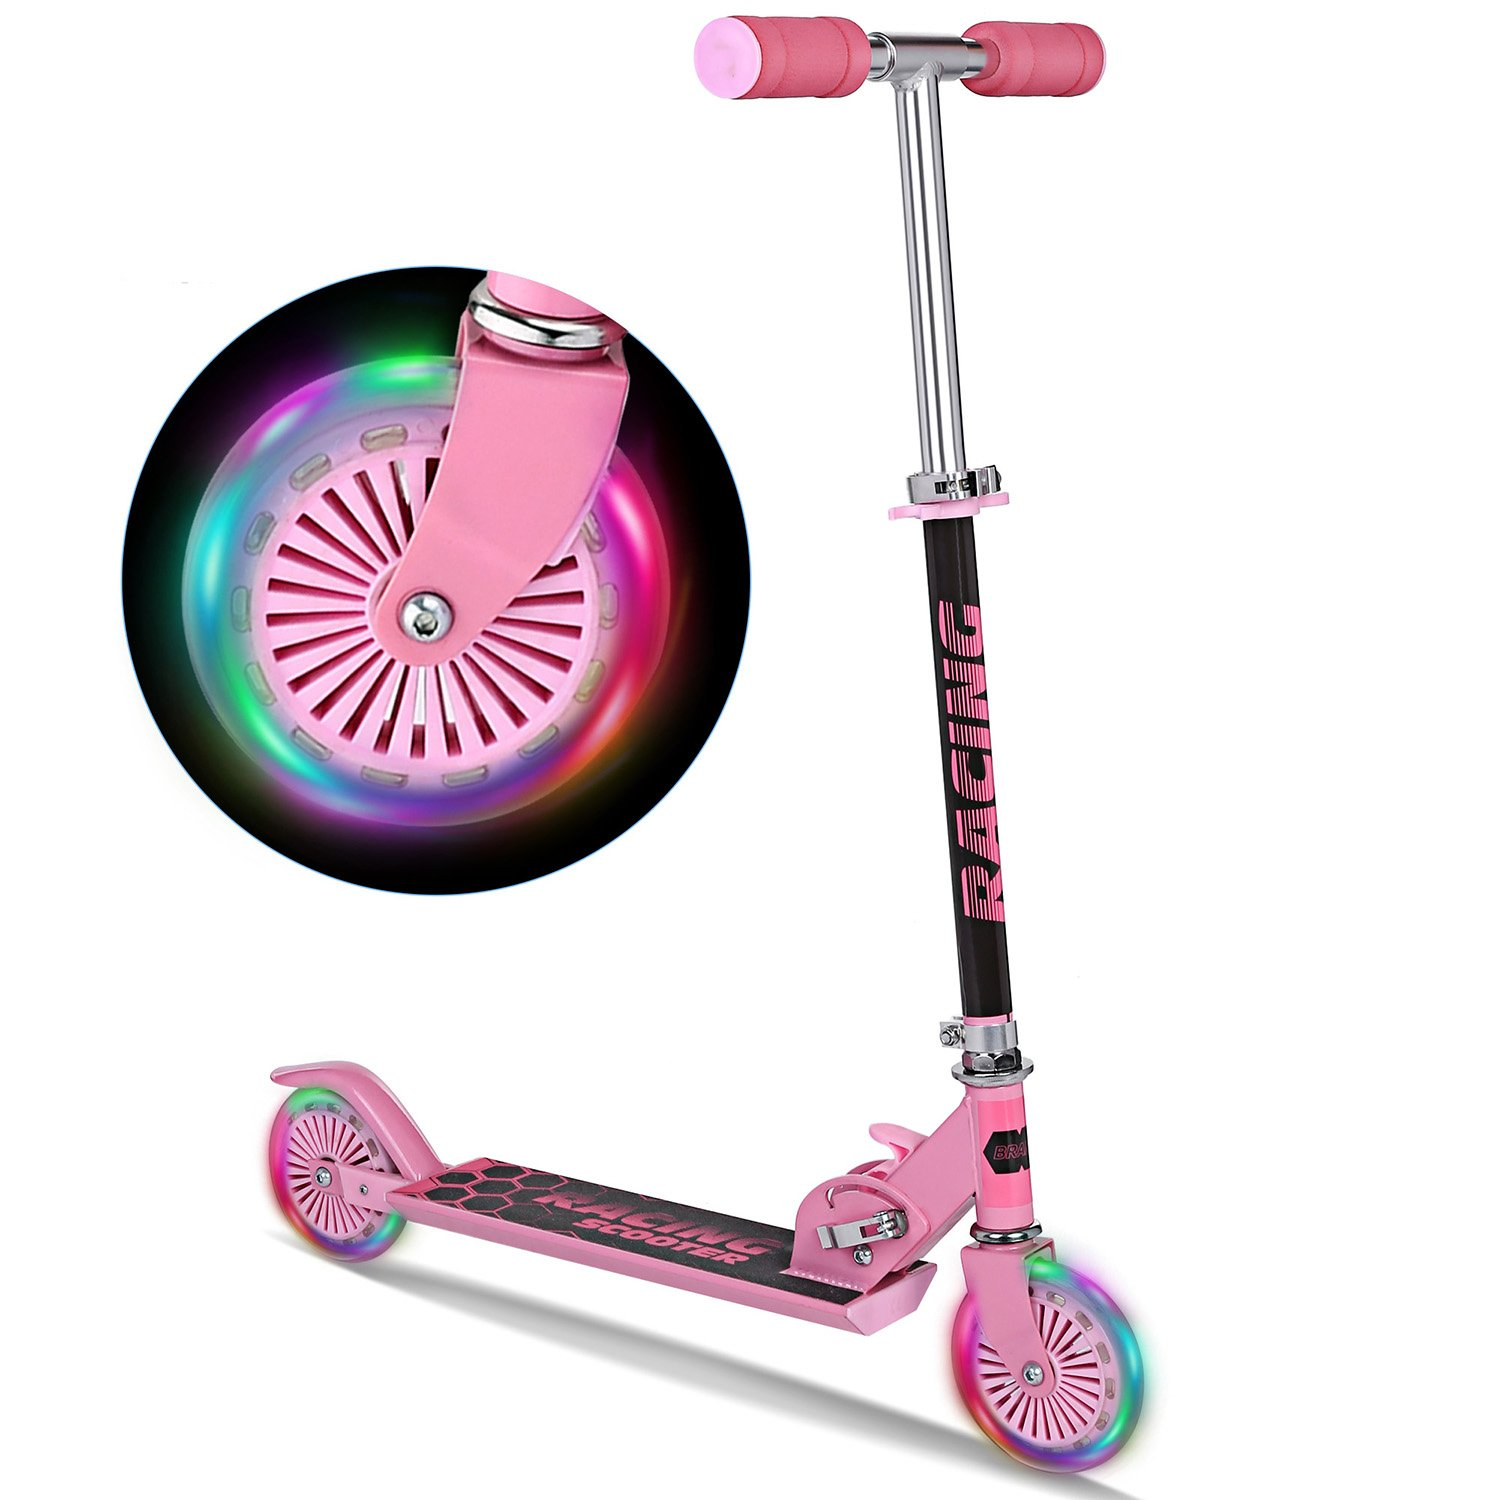 WeSkate B3 Scooter for Kids with LED Light Up Wheels, Adjustable Height Kick Scooters for Boys and Girls, Rear Fender Break|5lb Lightweight Folding Kids Scooter, 110lb Weight Capacity by WeSkate